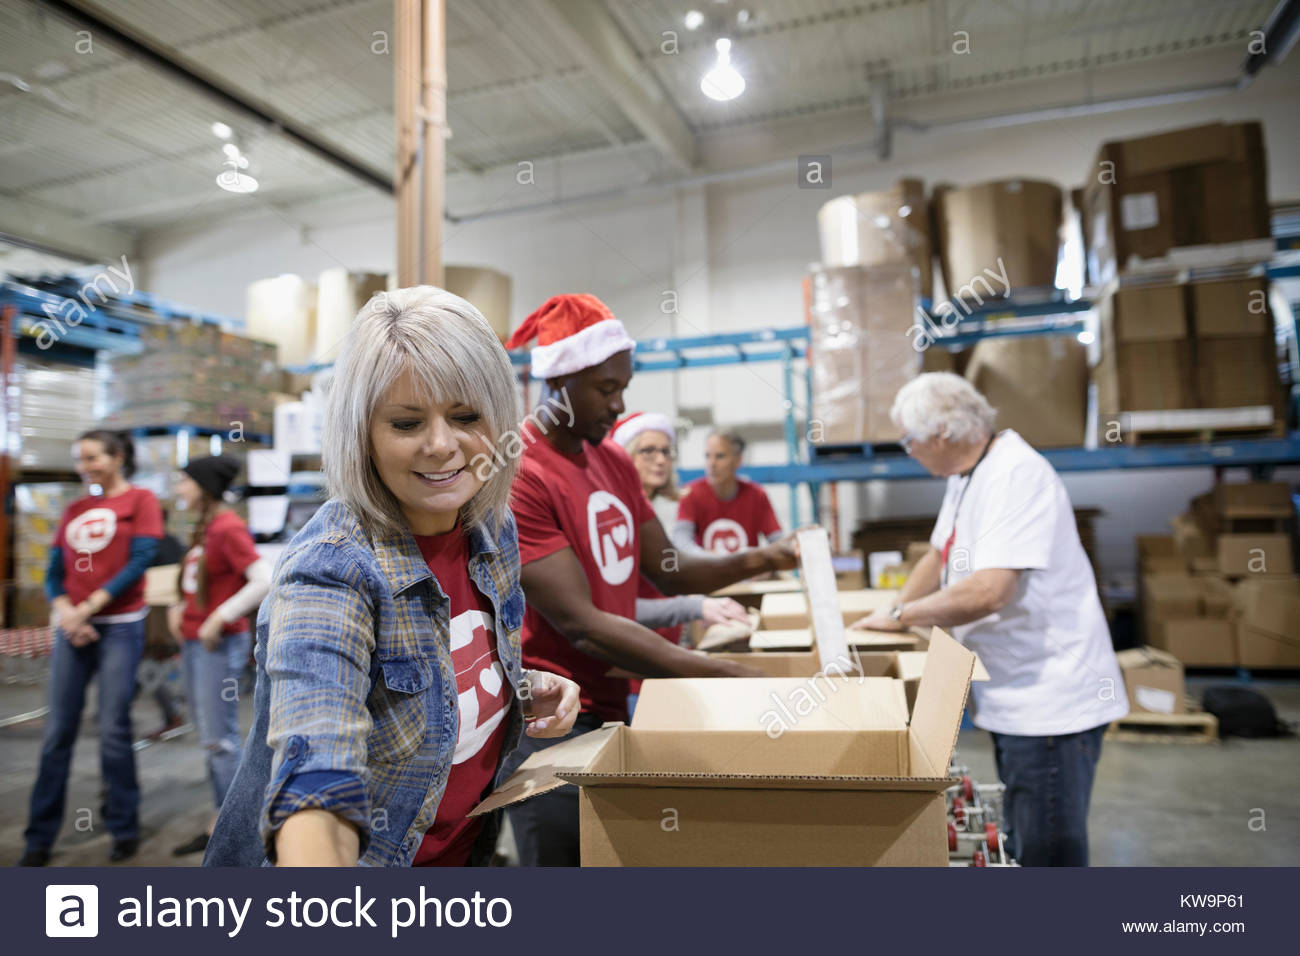 Female volunteer filling Christmas donation boxes in warehouse - Stock Image